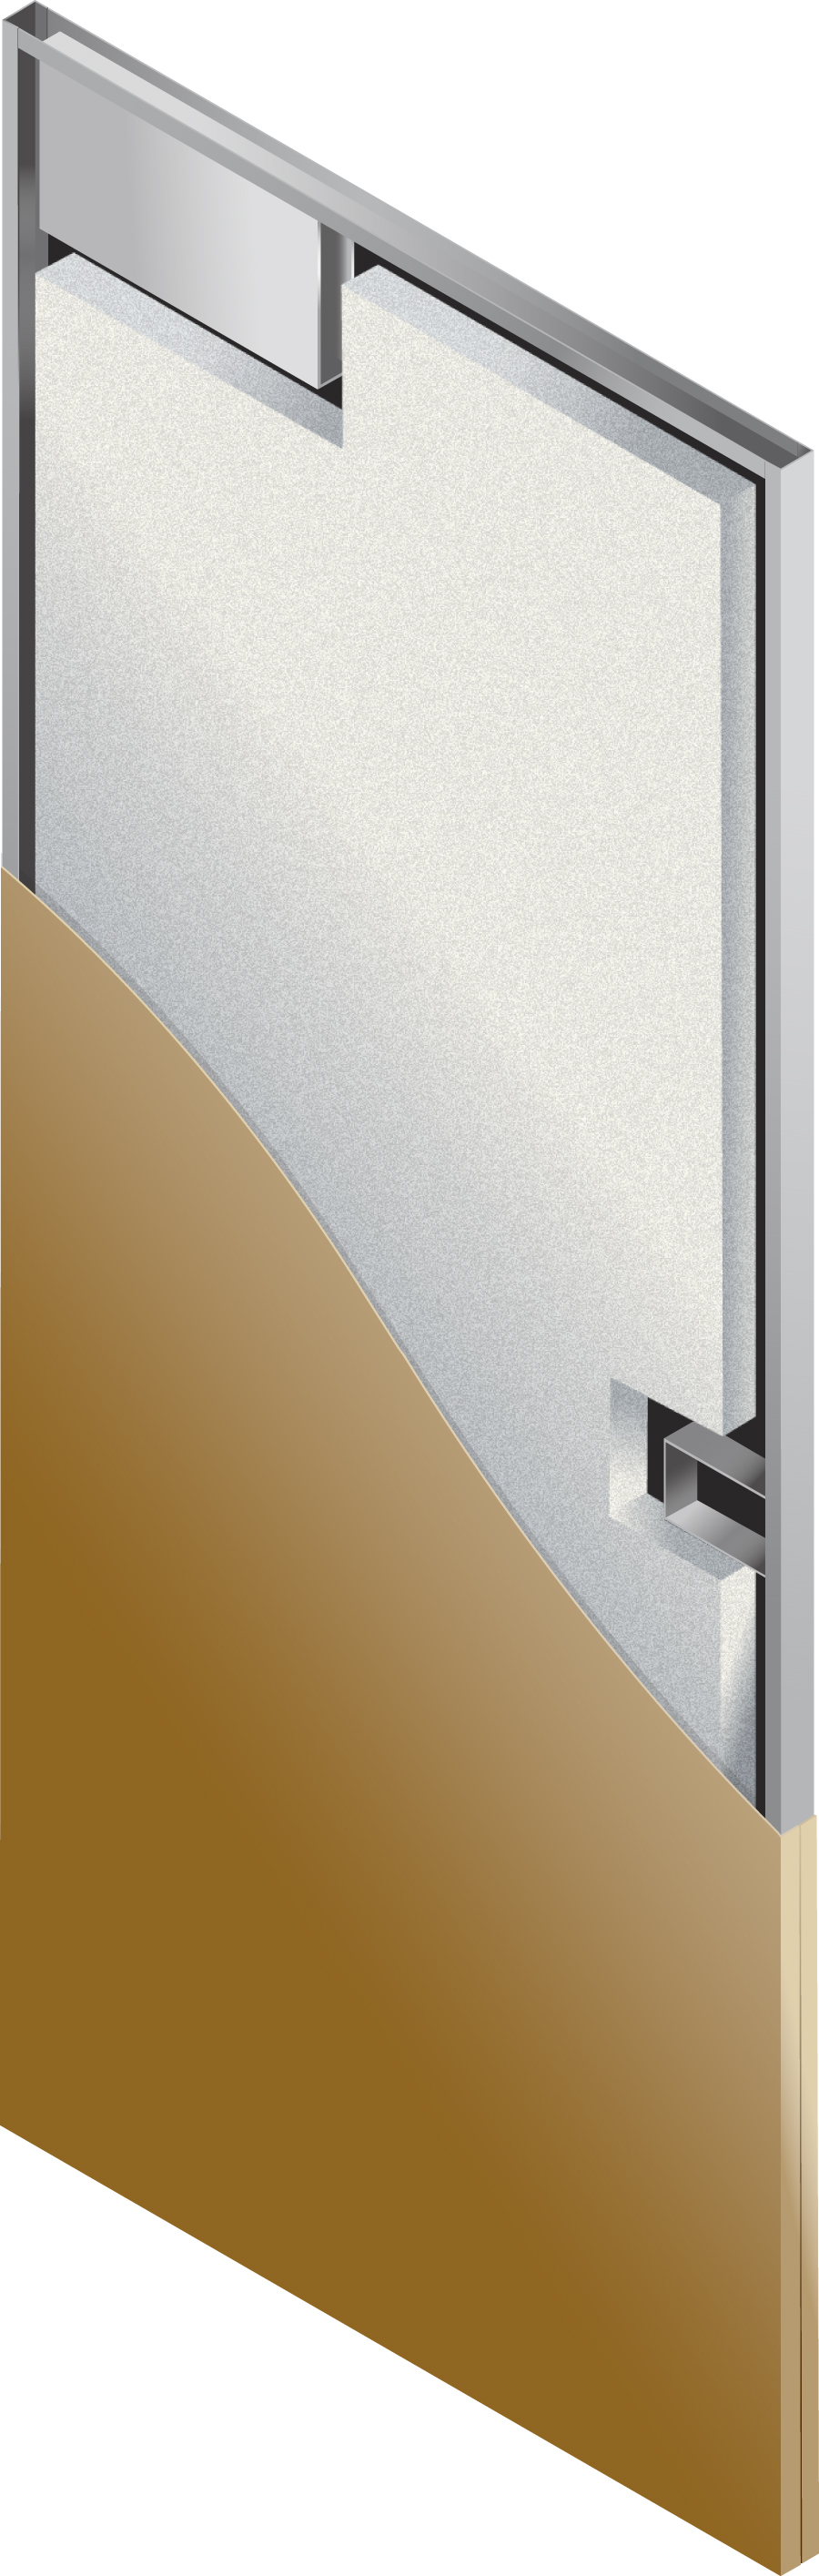 Download CURRIES BIM Files & Steel u0026CURRIES Commercial Steel Doors Metal Doors and much more ...